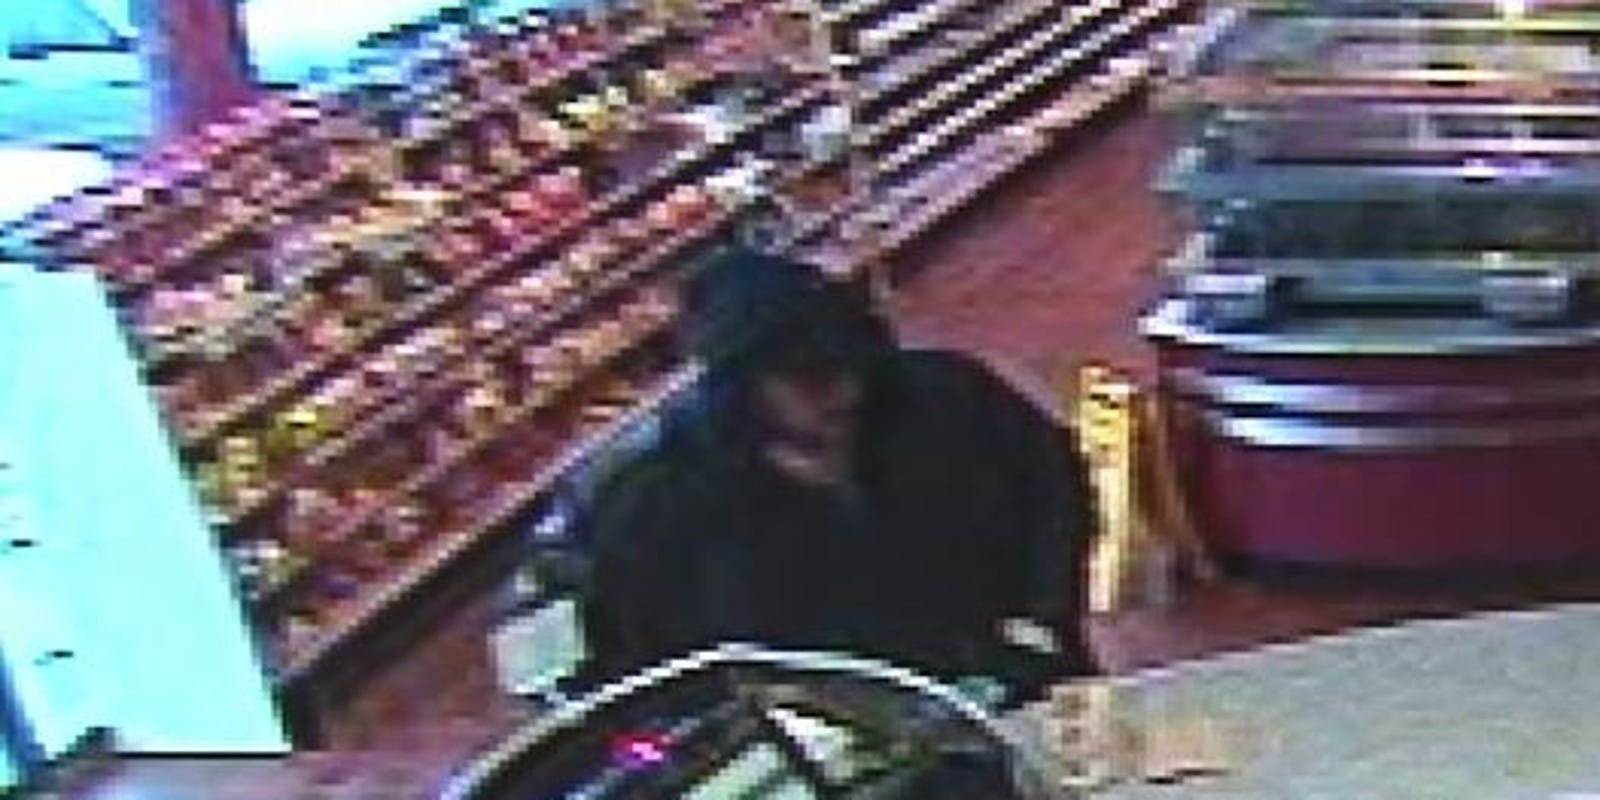 Investigators need help finding lottery ticket purchaser